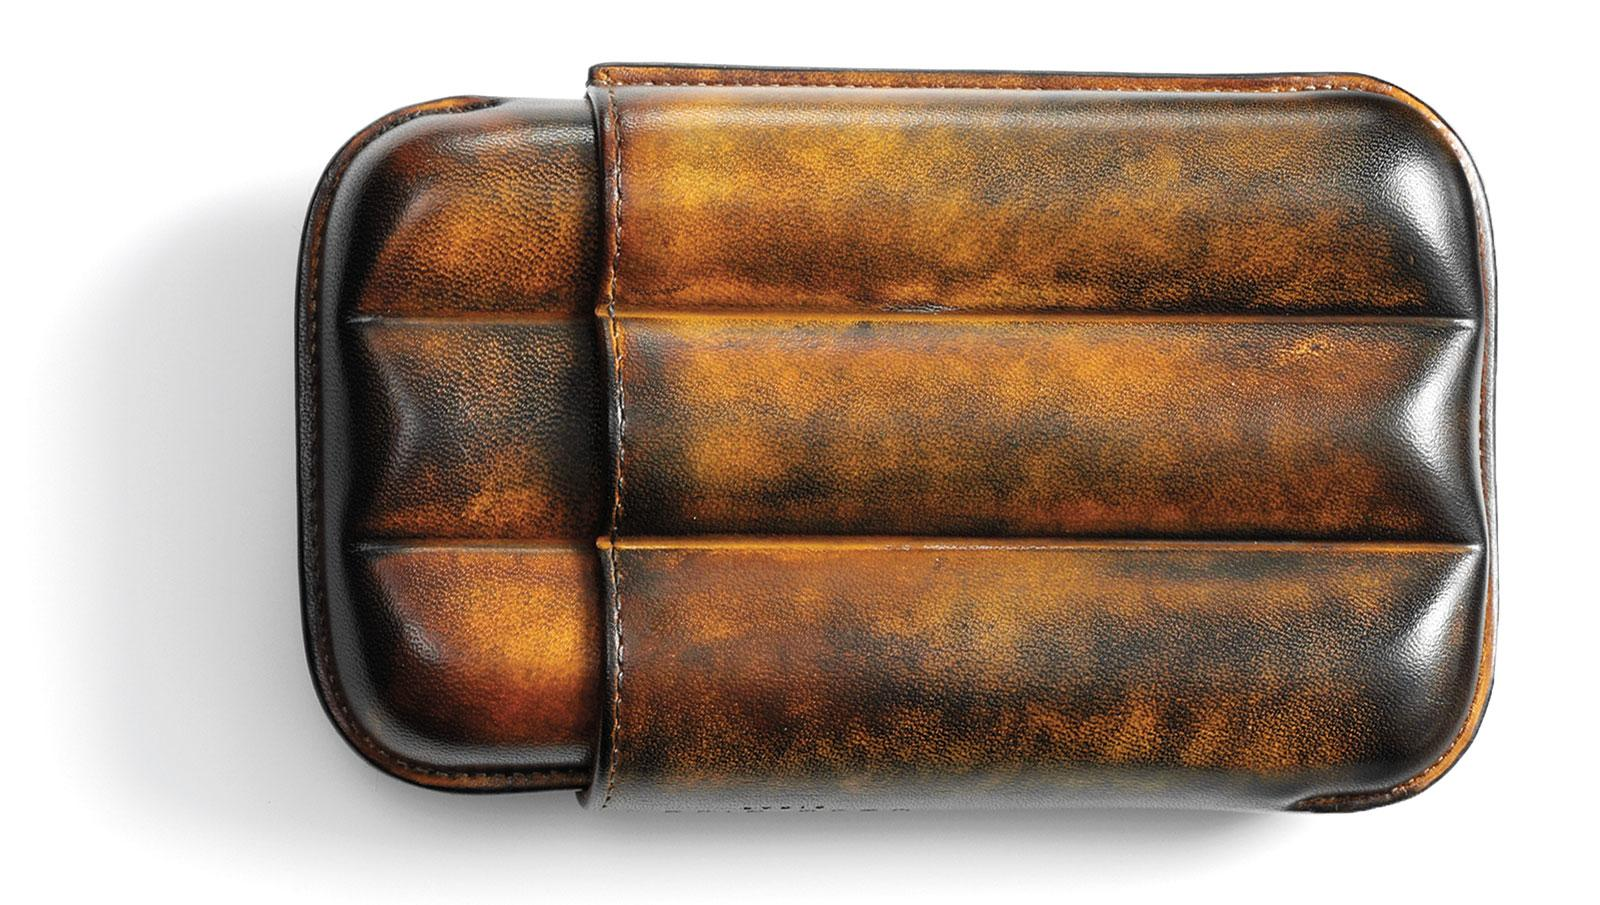 Elie Bleu's Havana Patina Leather 3 Cigar Case is meticulously oiled and colored to achieve a patina reminiscent of the rich, deep hues of aged leather.